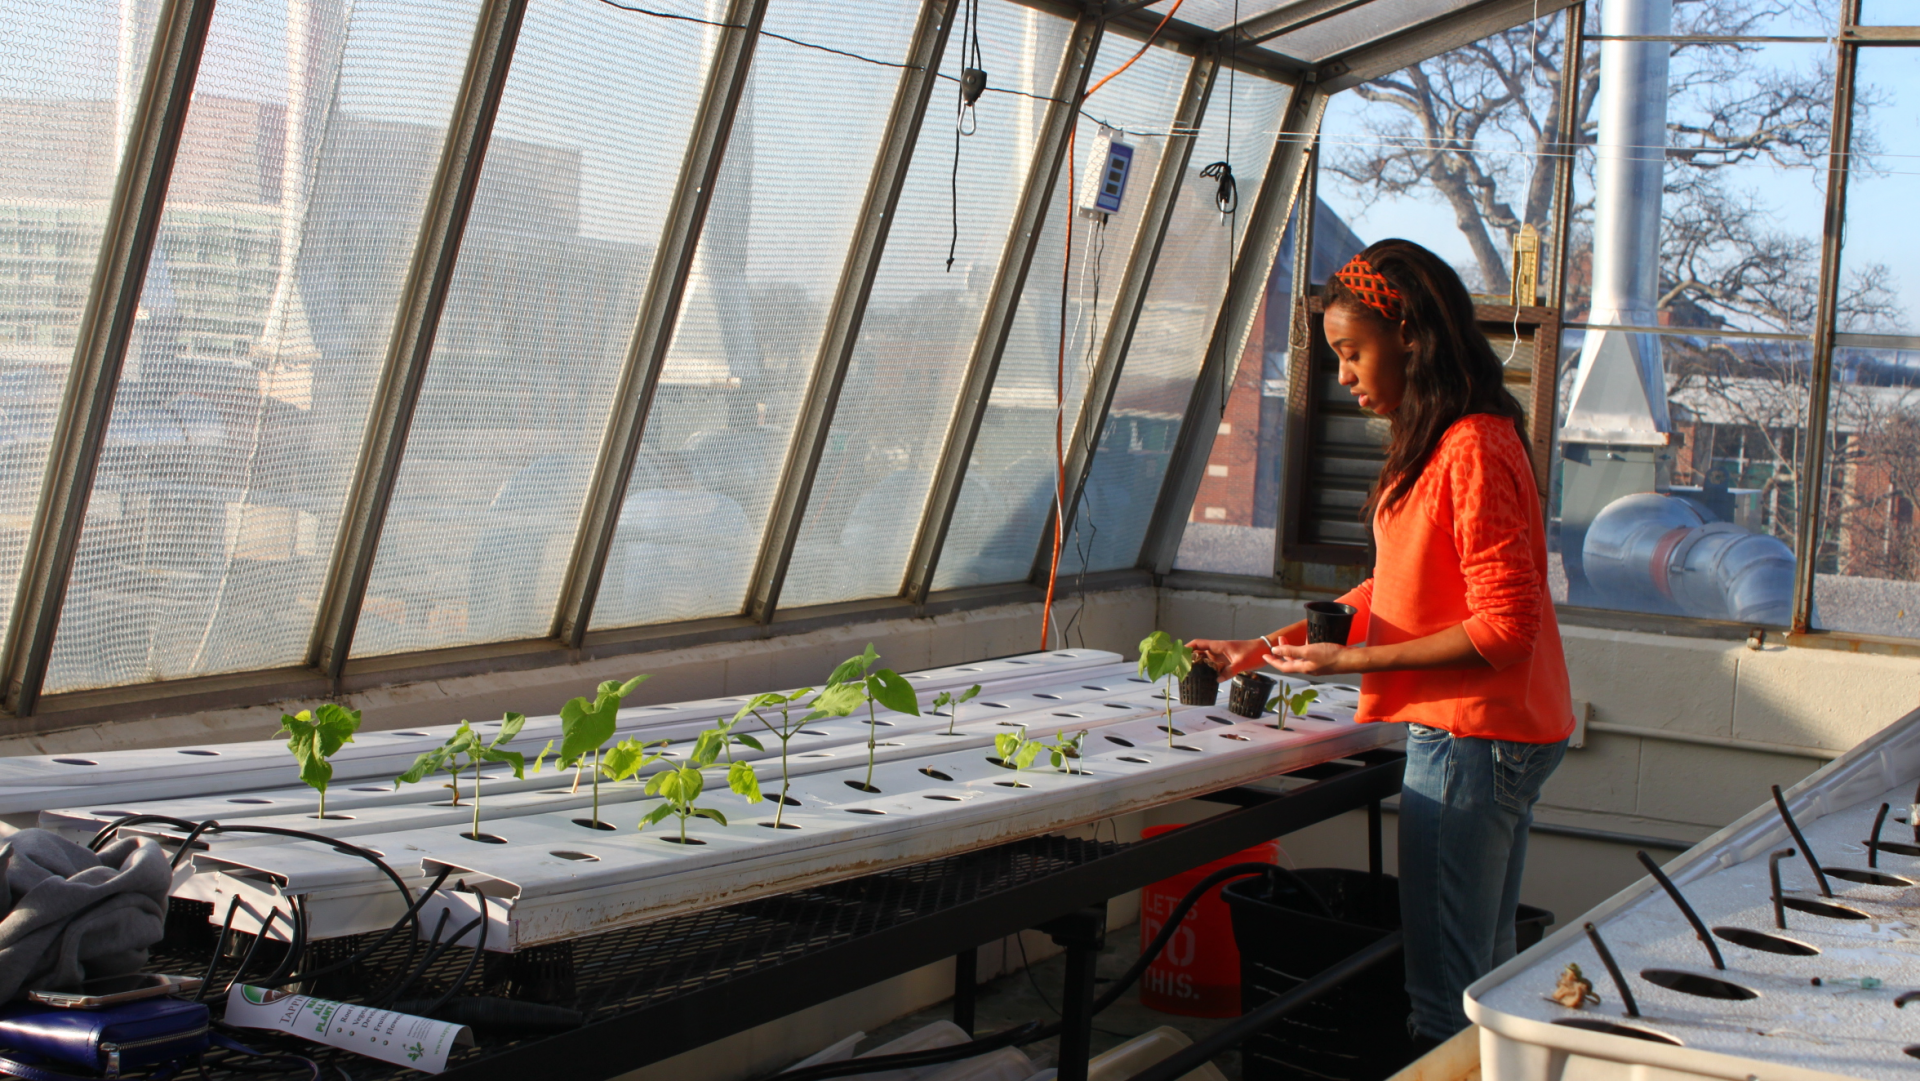 Student tending to plants in a greenhouse